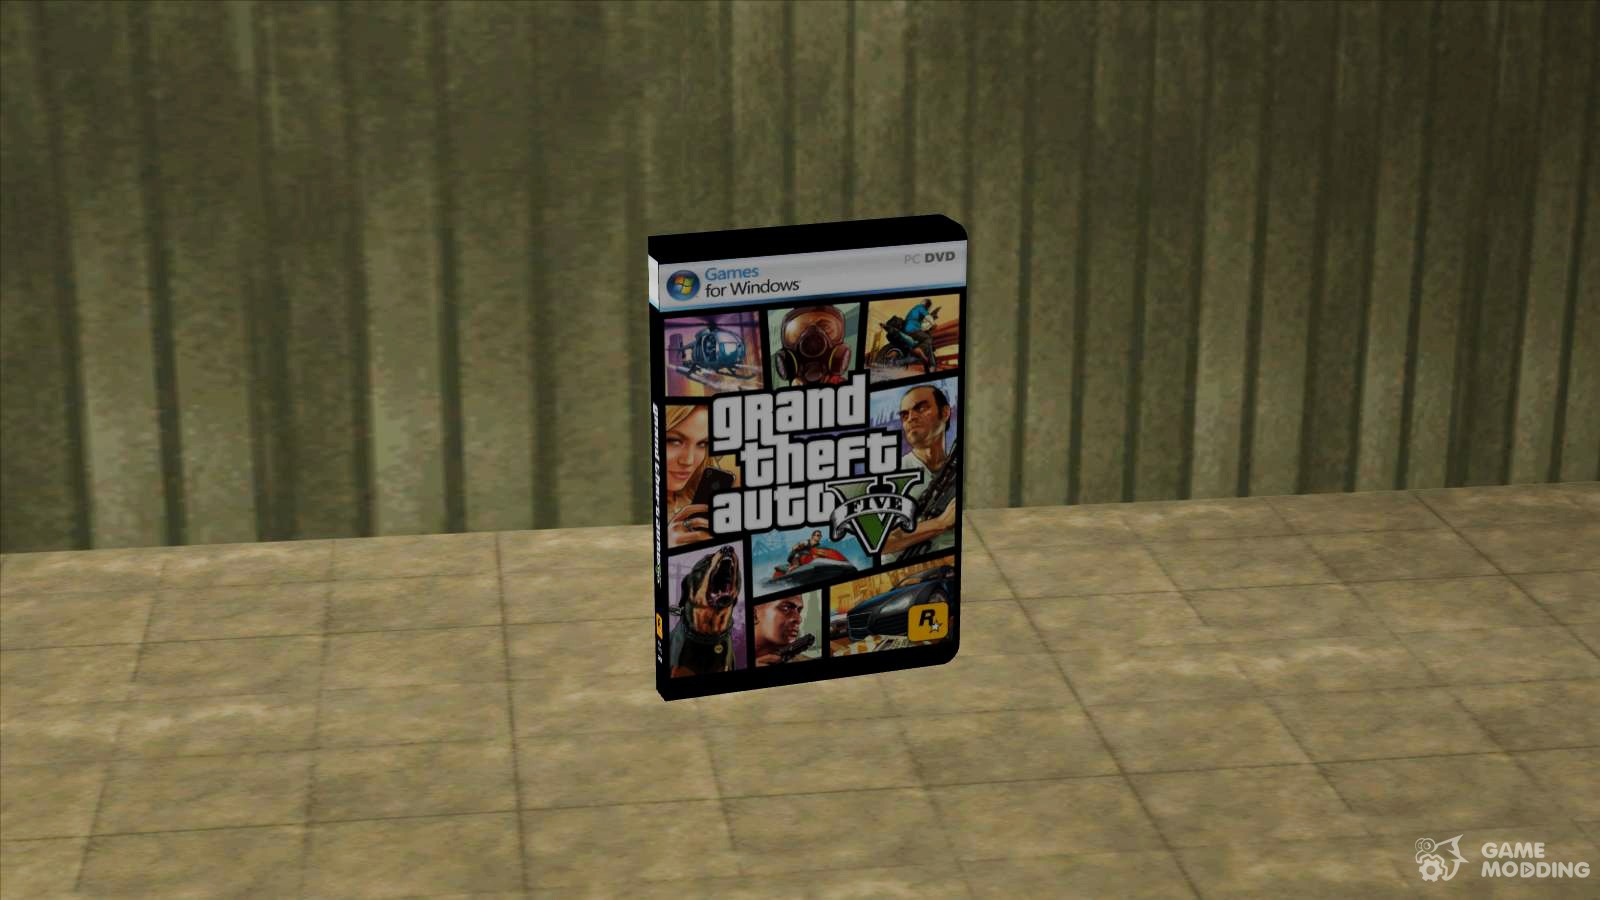 San andreas 100% savegame | grand theft auto: san andreas mods.